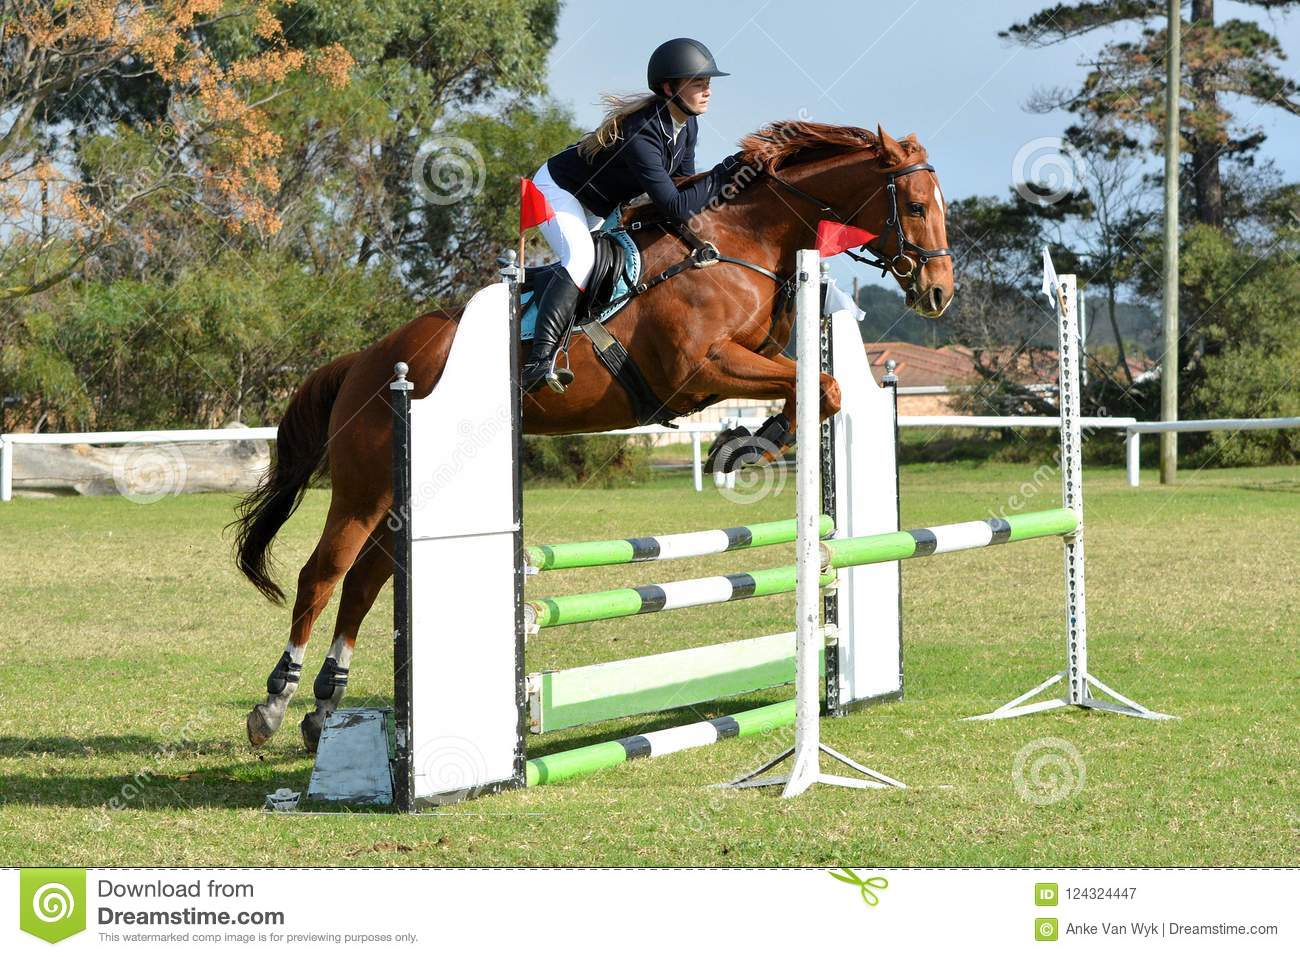 129 Jumping Oxer Photos Free Royalty Free Stock Photos From Dreamstime